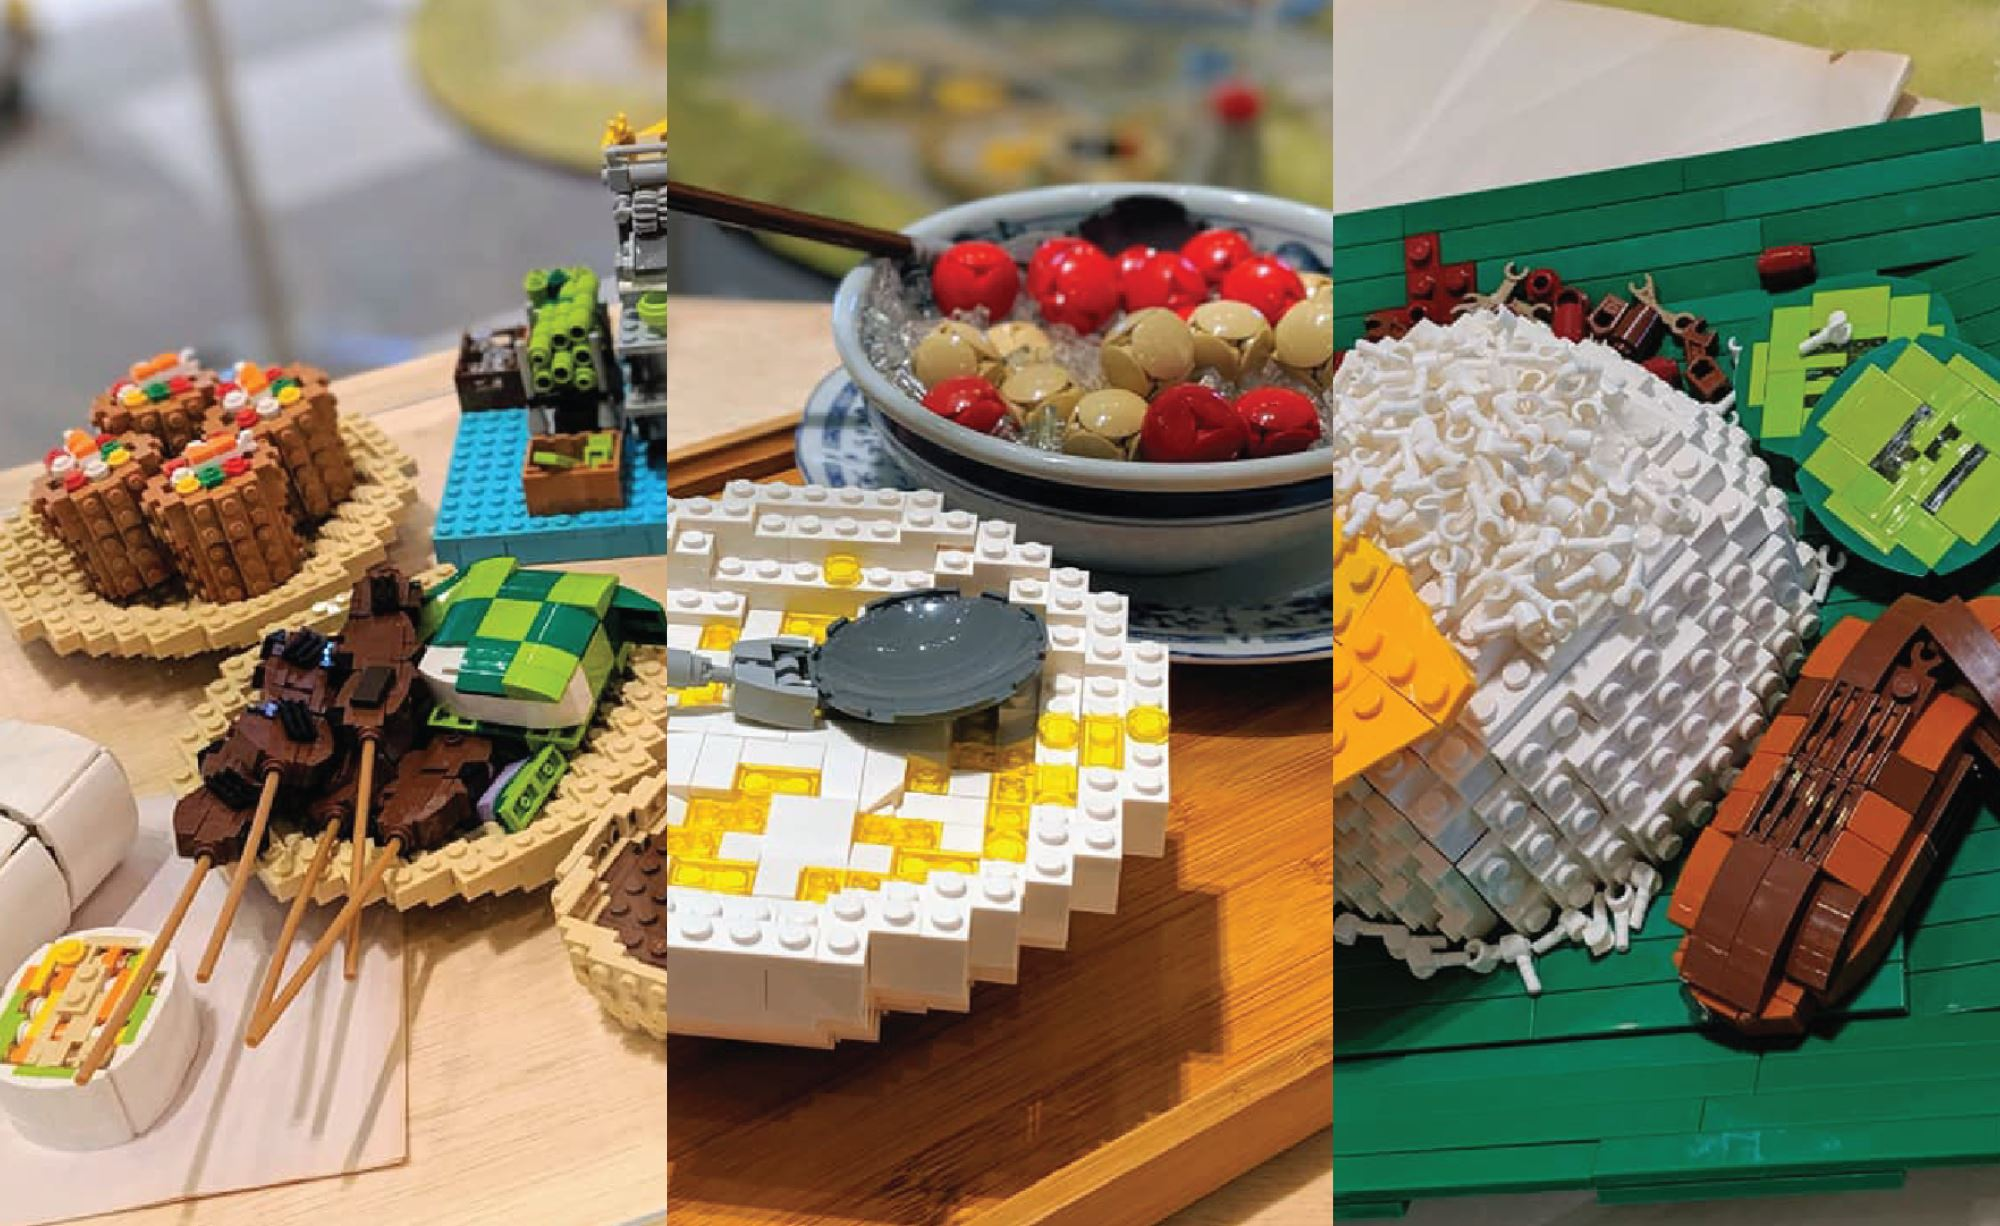 our favourite malaysian dishes recreated using lego bricks!